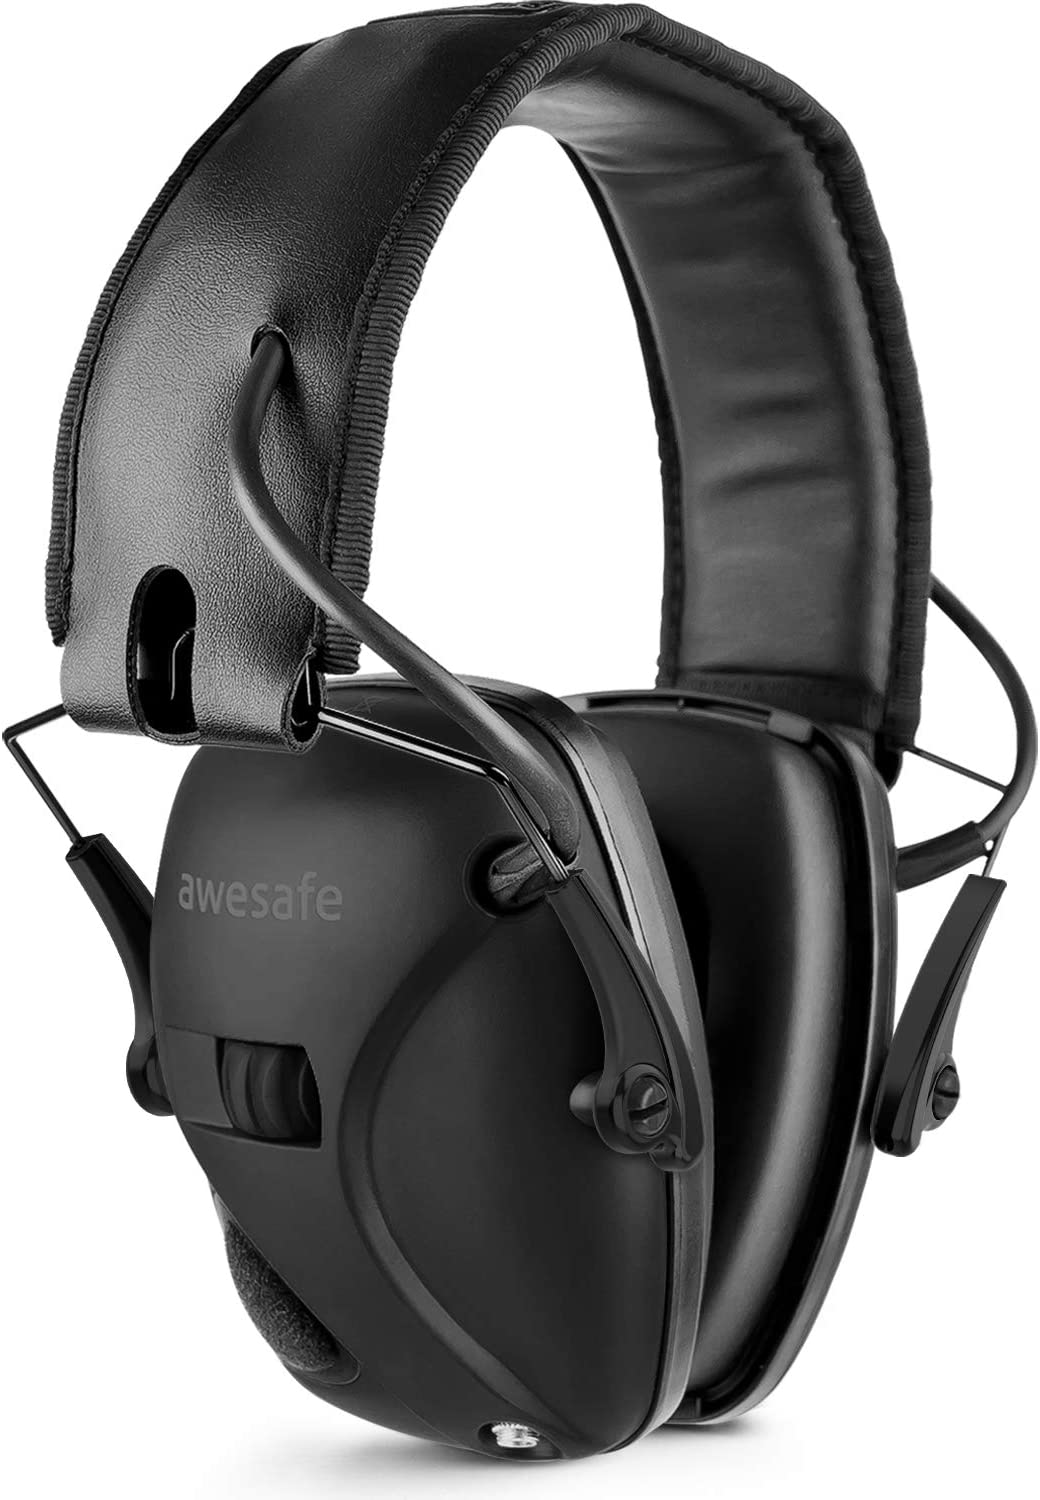 Awesafe Electronic Shooting Earmuffs